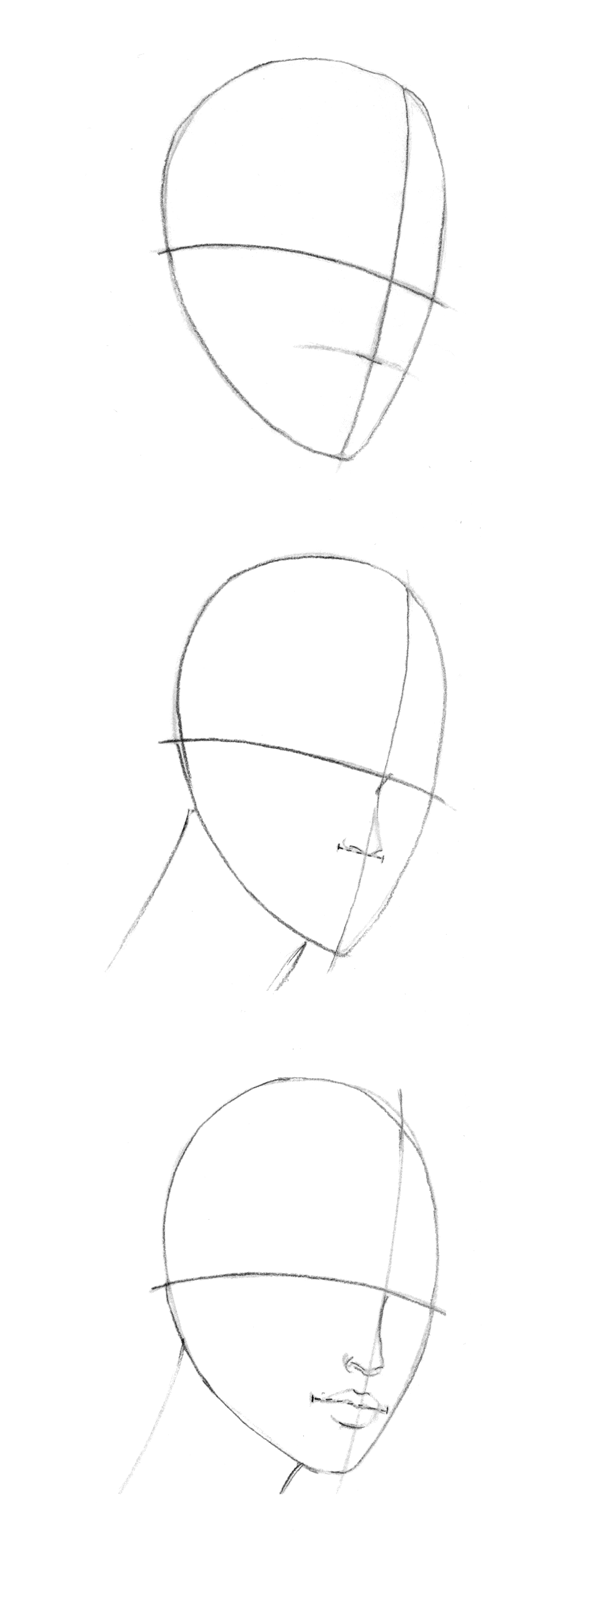 Drawn profile head profile For For THE Heads VIEW